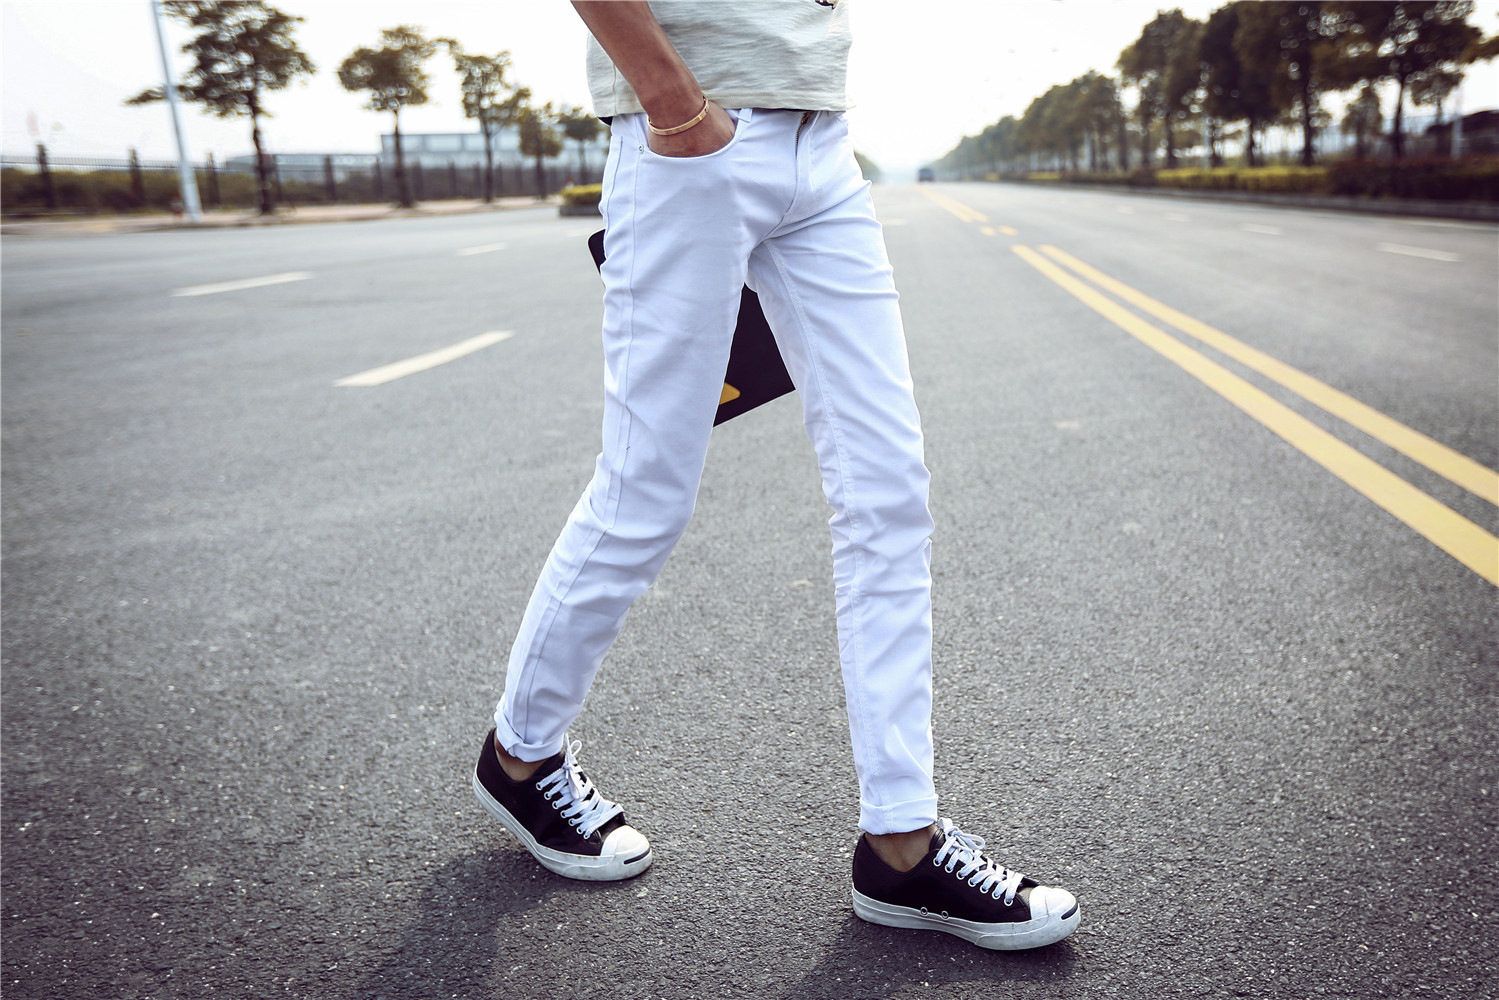 Autumn New Style Youth Korean-style White Jeans Men's Casual Slim Fit Skinny Pants Elasticity Thin